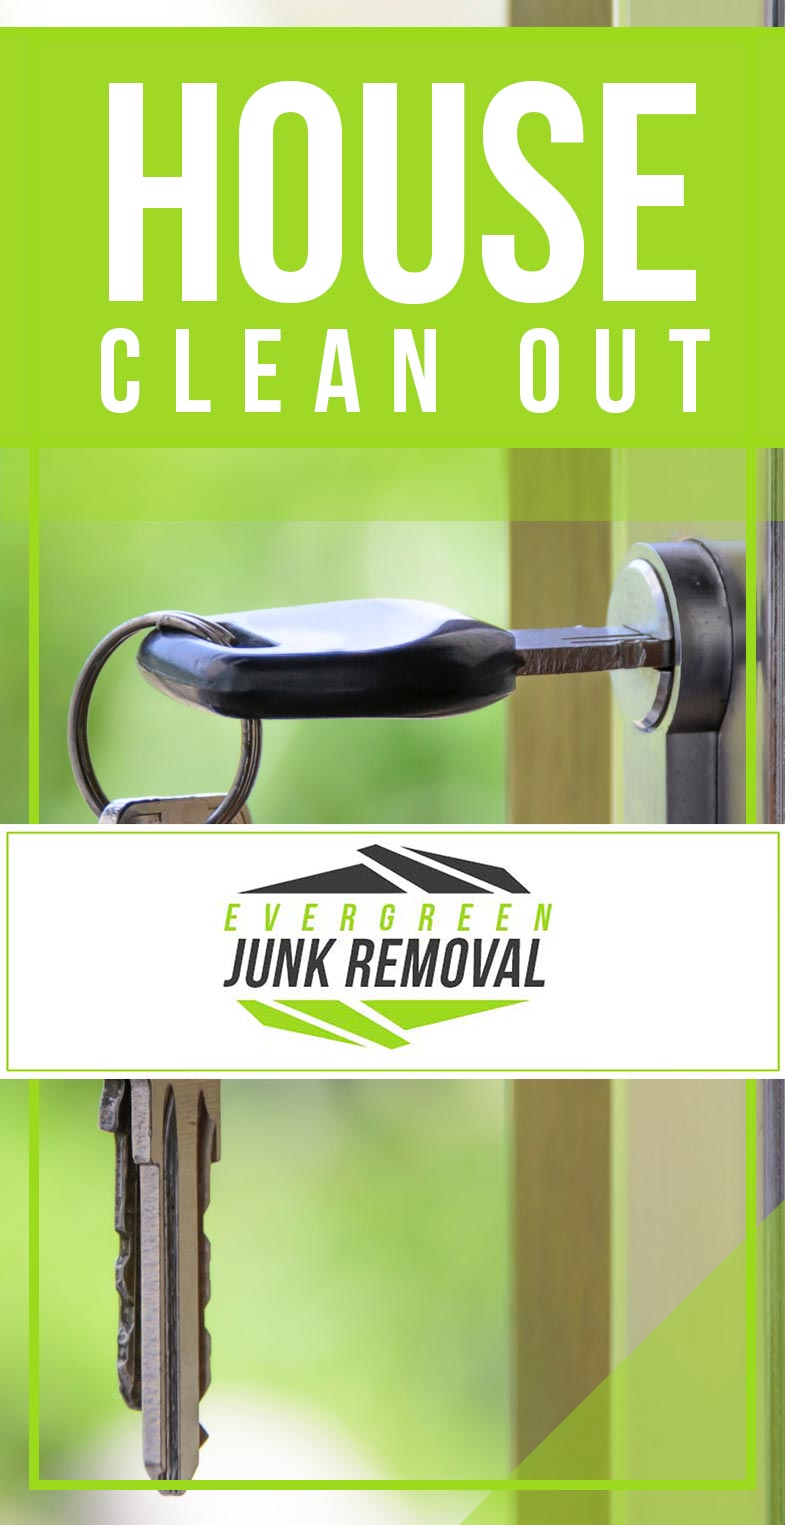 Junk Removal Palm Beach Gardens House Clean Out